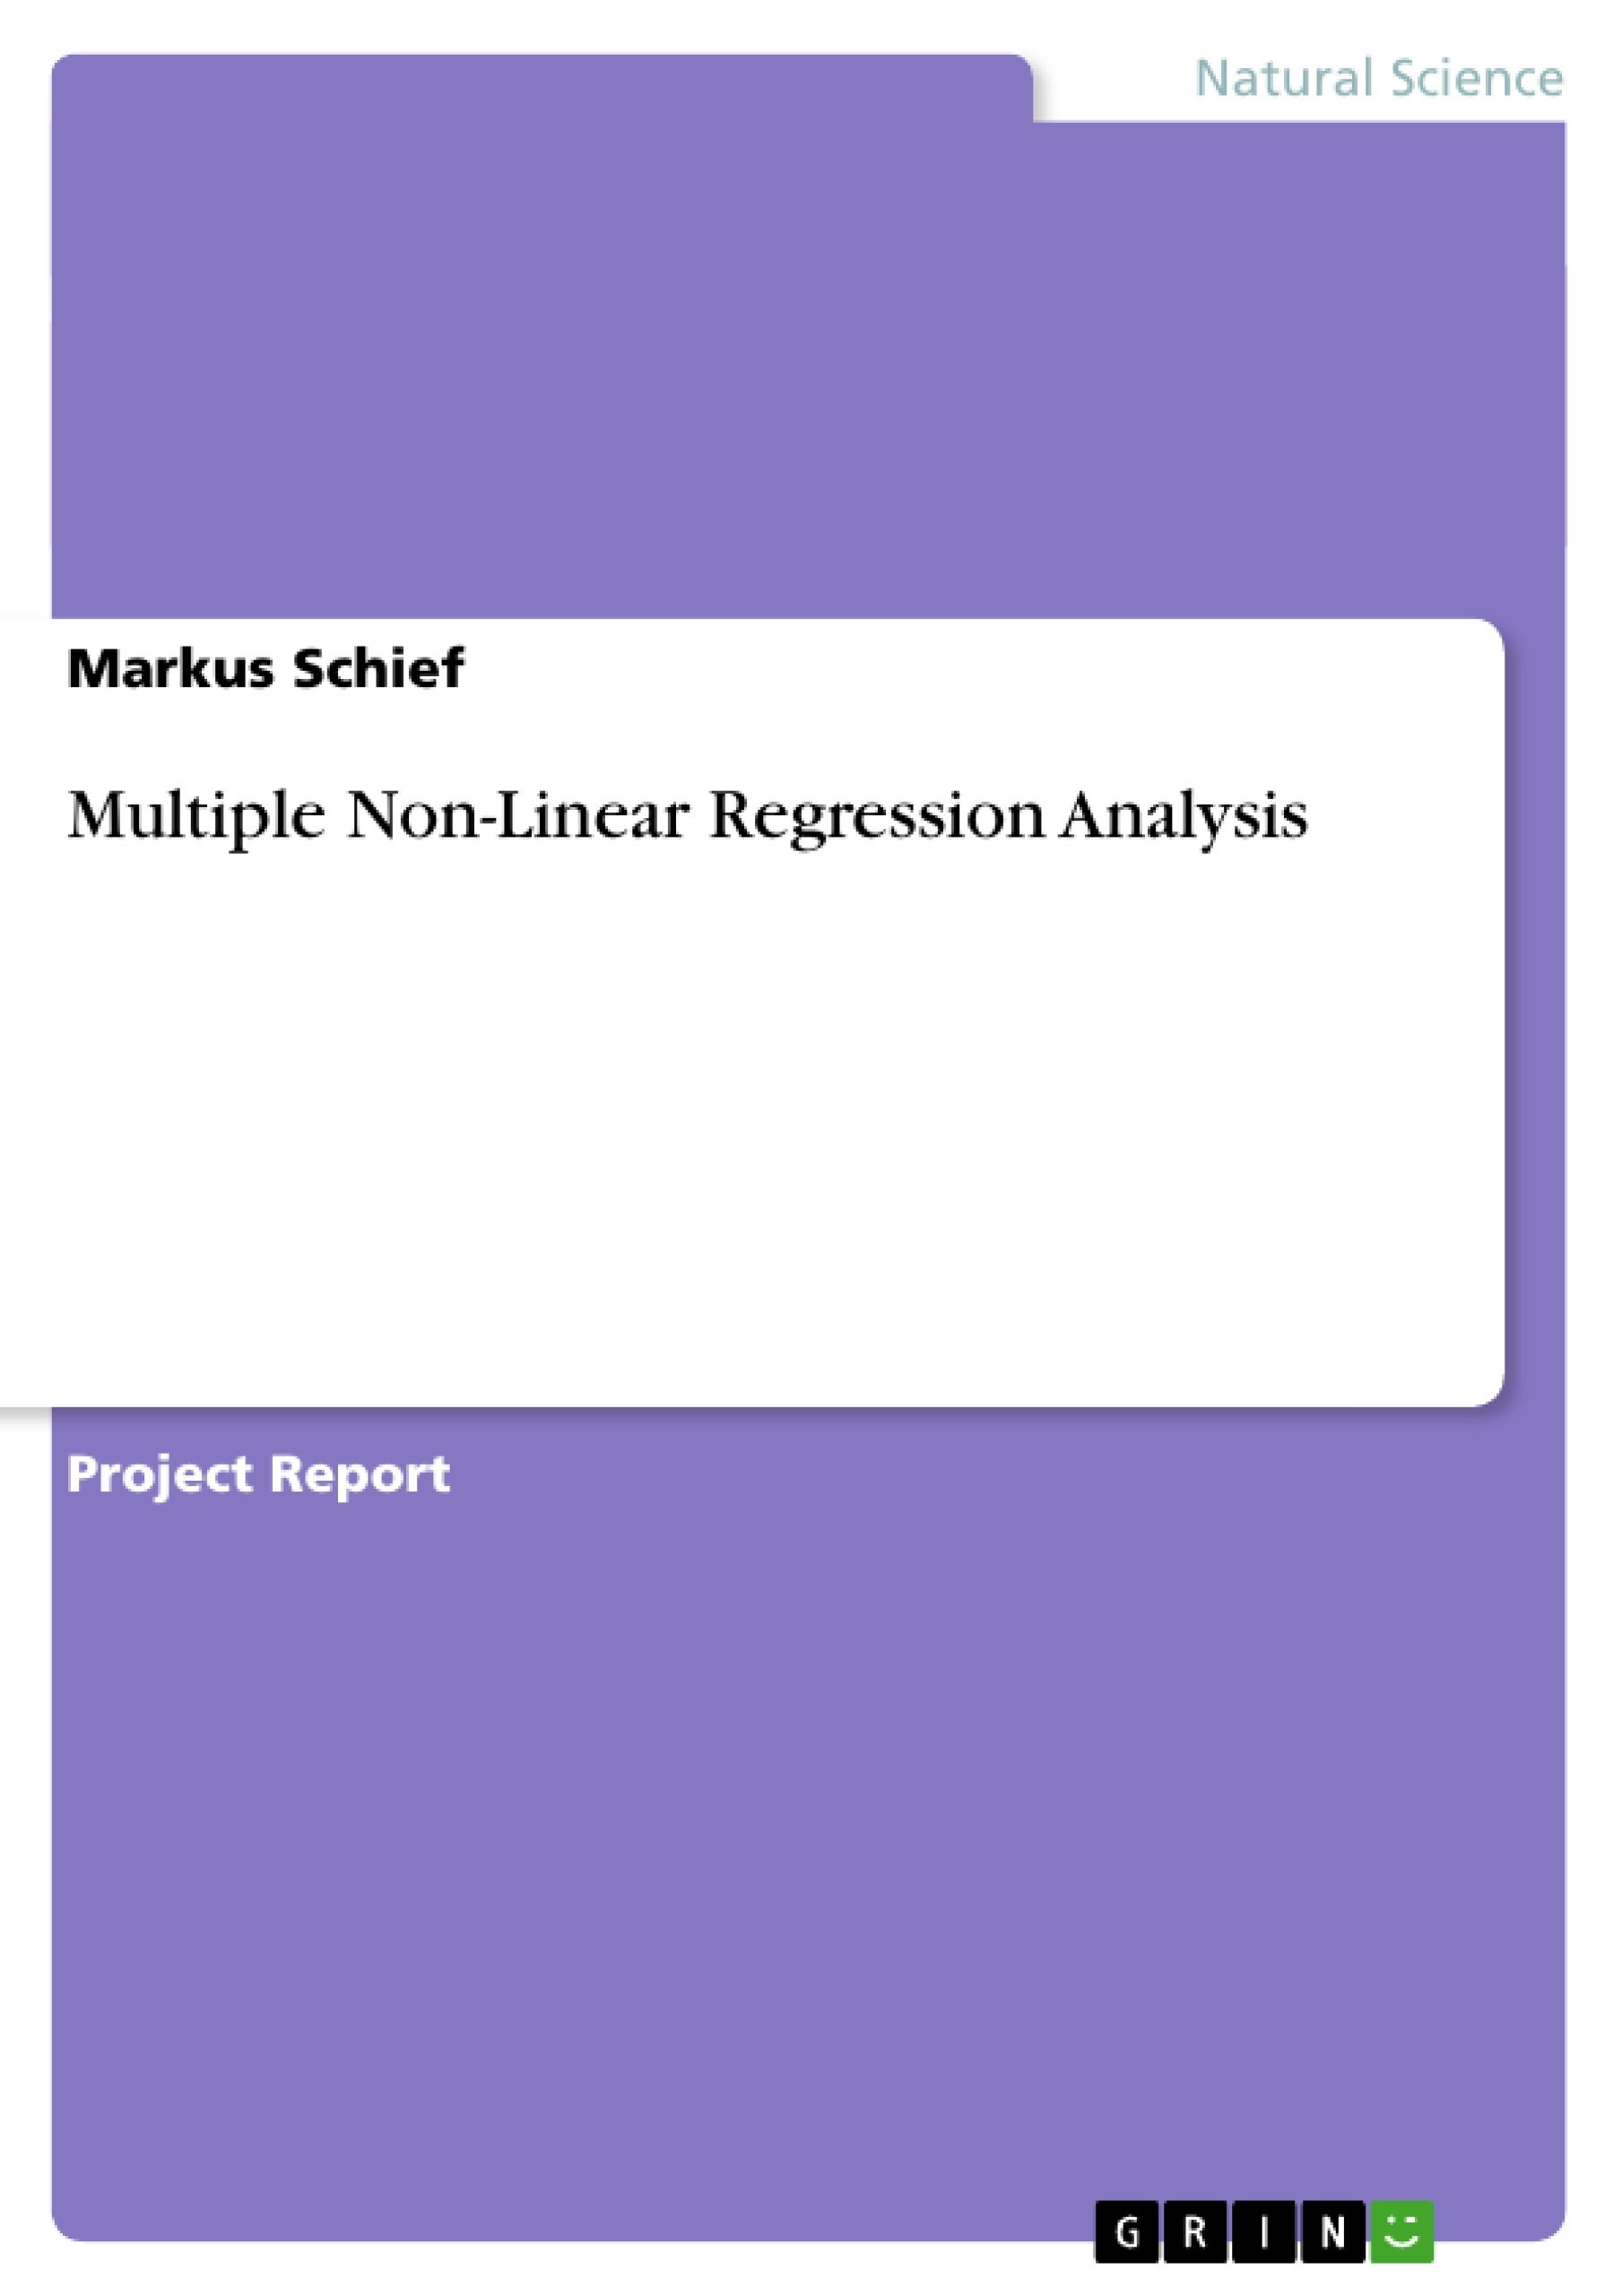 Title: Multiple Non-Linear Regression Analysis